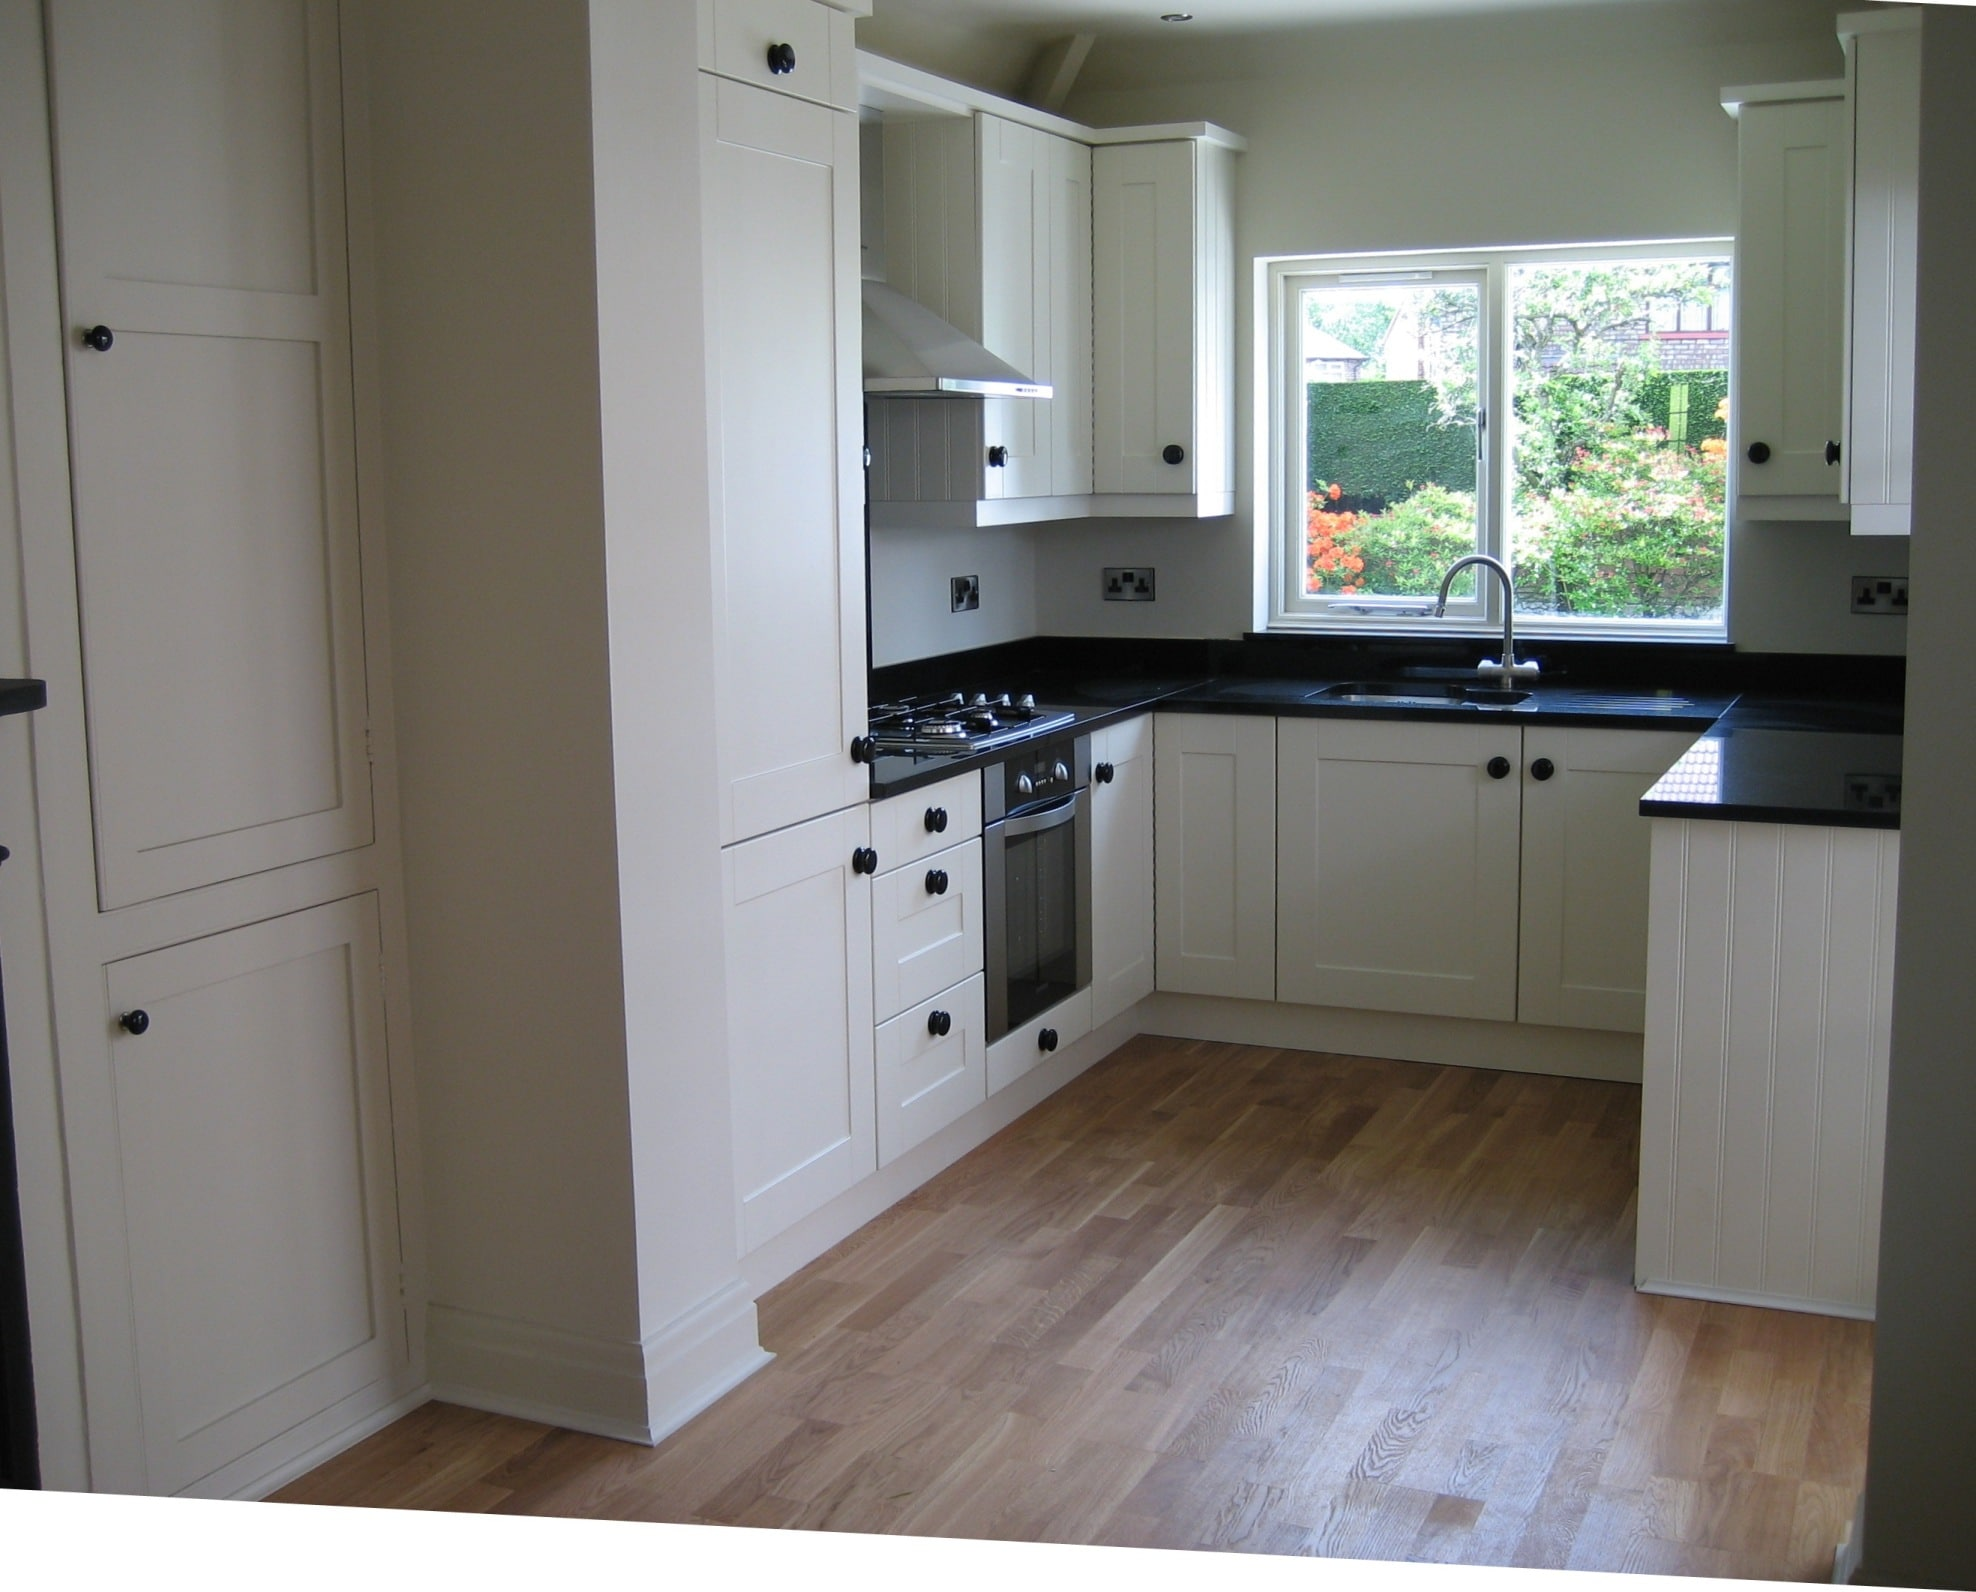 Timpery shaker fitted kitchen transforming homes for for Fitted kitchens